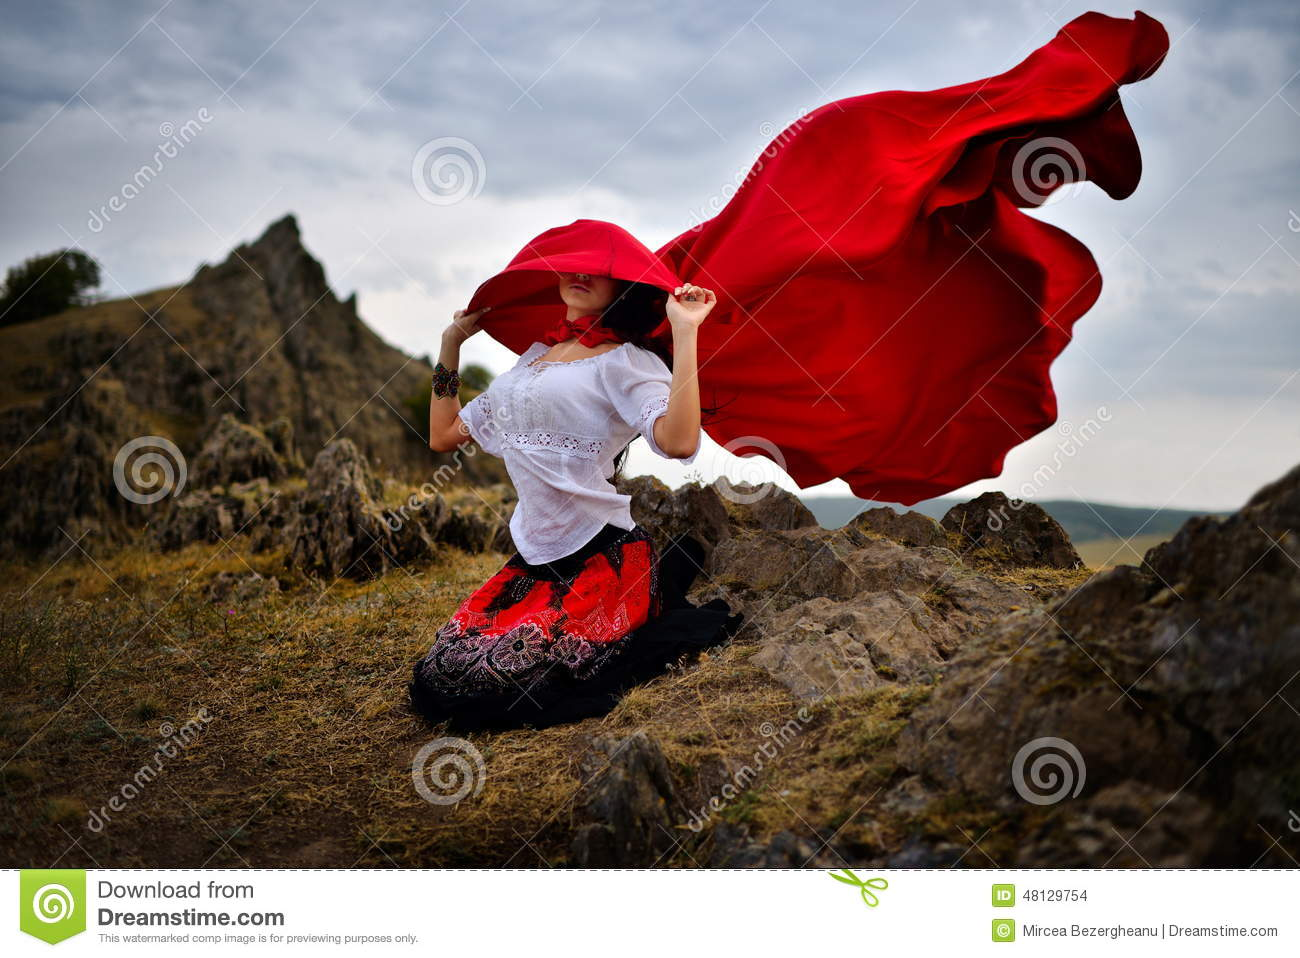 Western gunslinger royalty free stock photography image 31717397 - Beautiful Woman With Red Cloak Stock Images Beautiful Woman With Red Cloak Western Gunslinger Royalty Free Stock Photography